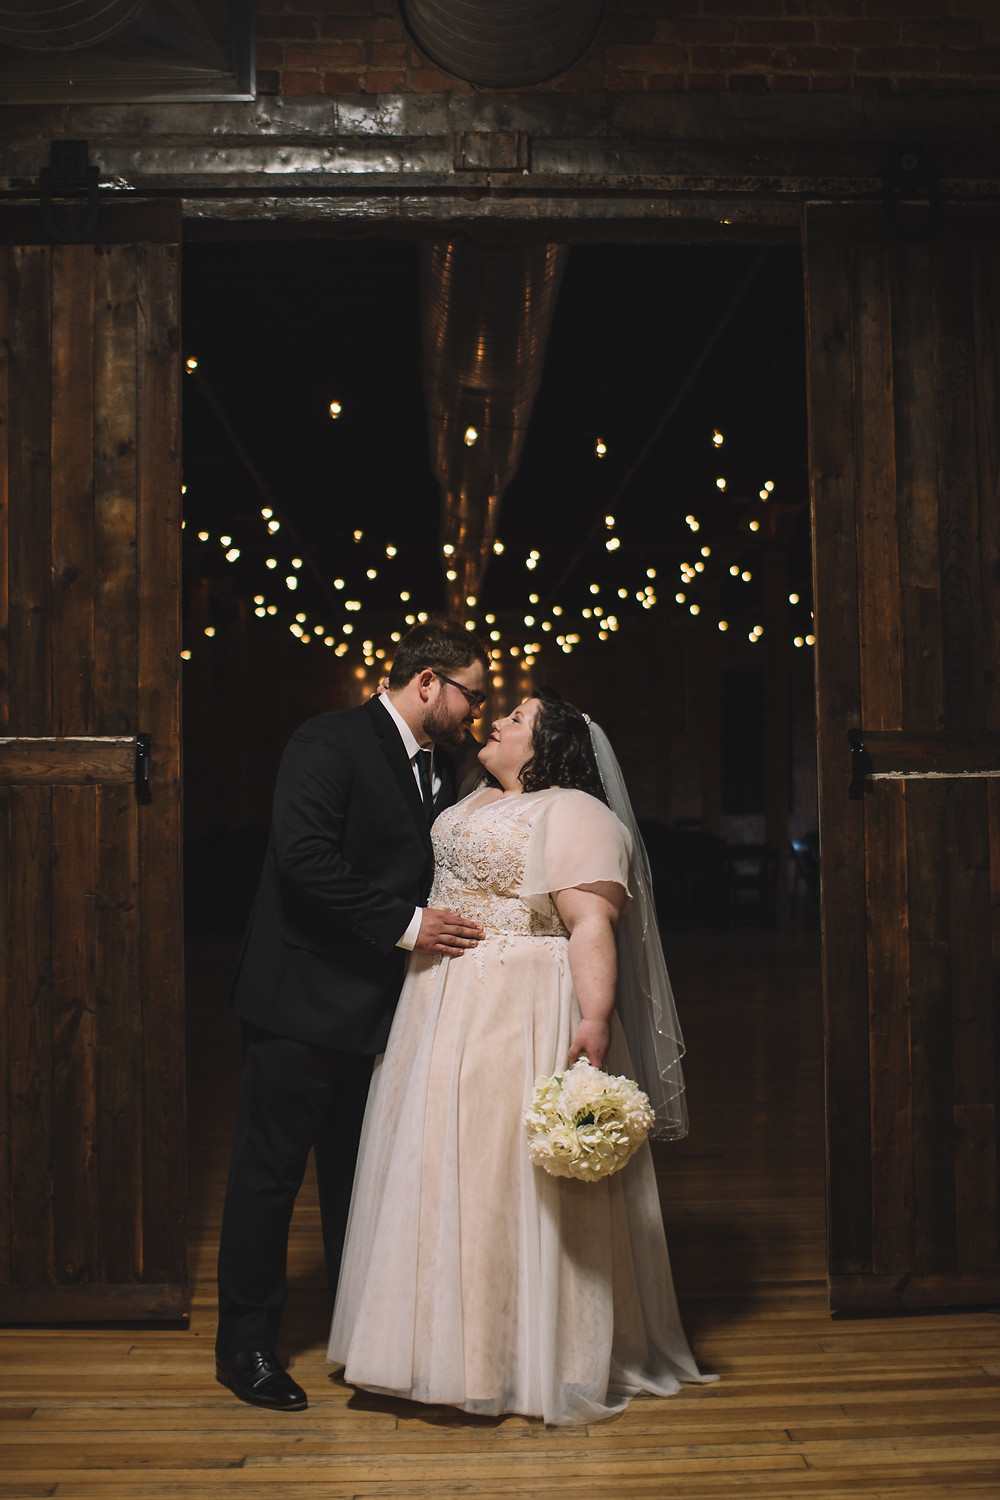 Peoria, IL, Illinois, Trailside Event Center, Wedding Venue, Central Illinois, Exposed Brick, Wooden Columns, Warehouse, Renovated, Peoria Heights, Illinois Photographer, Photography